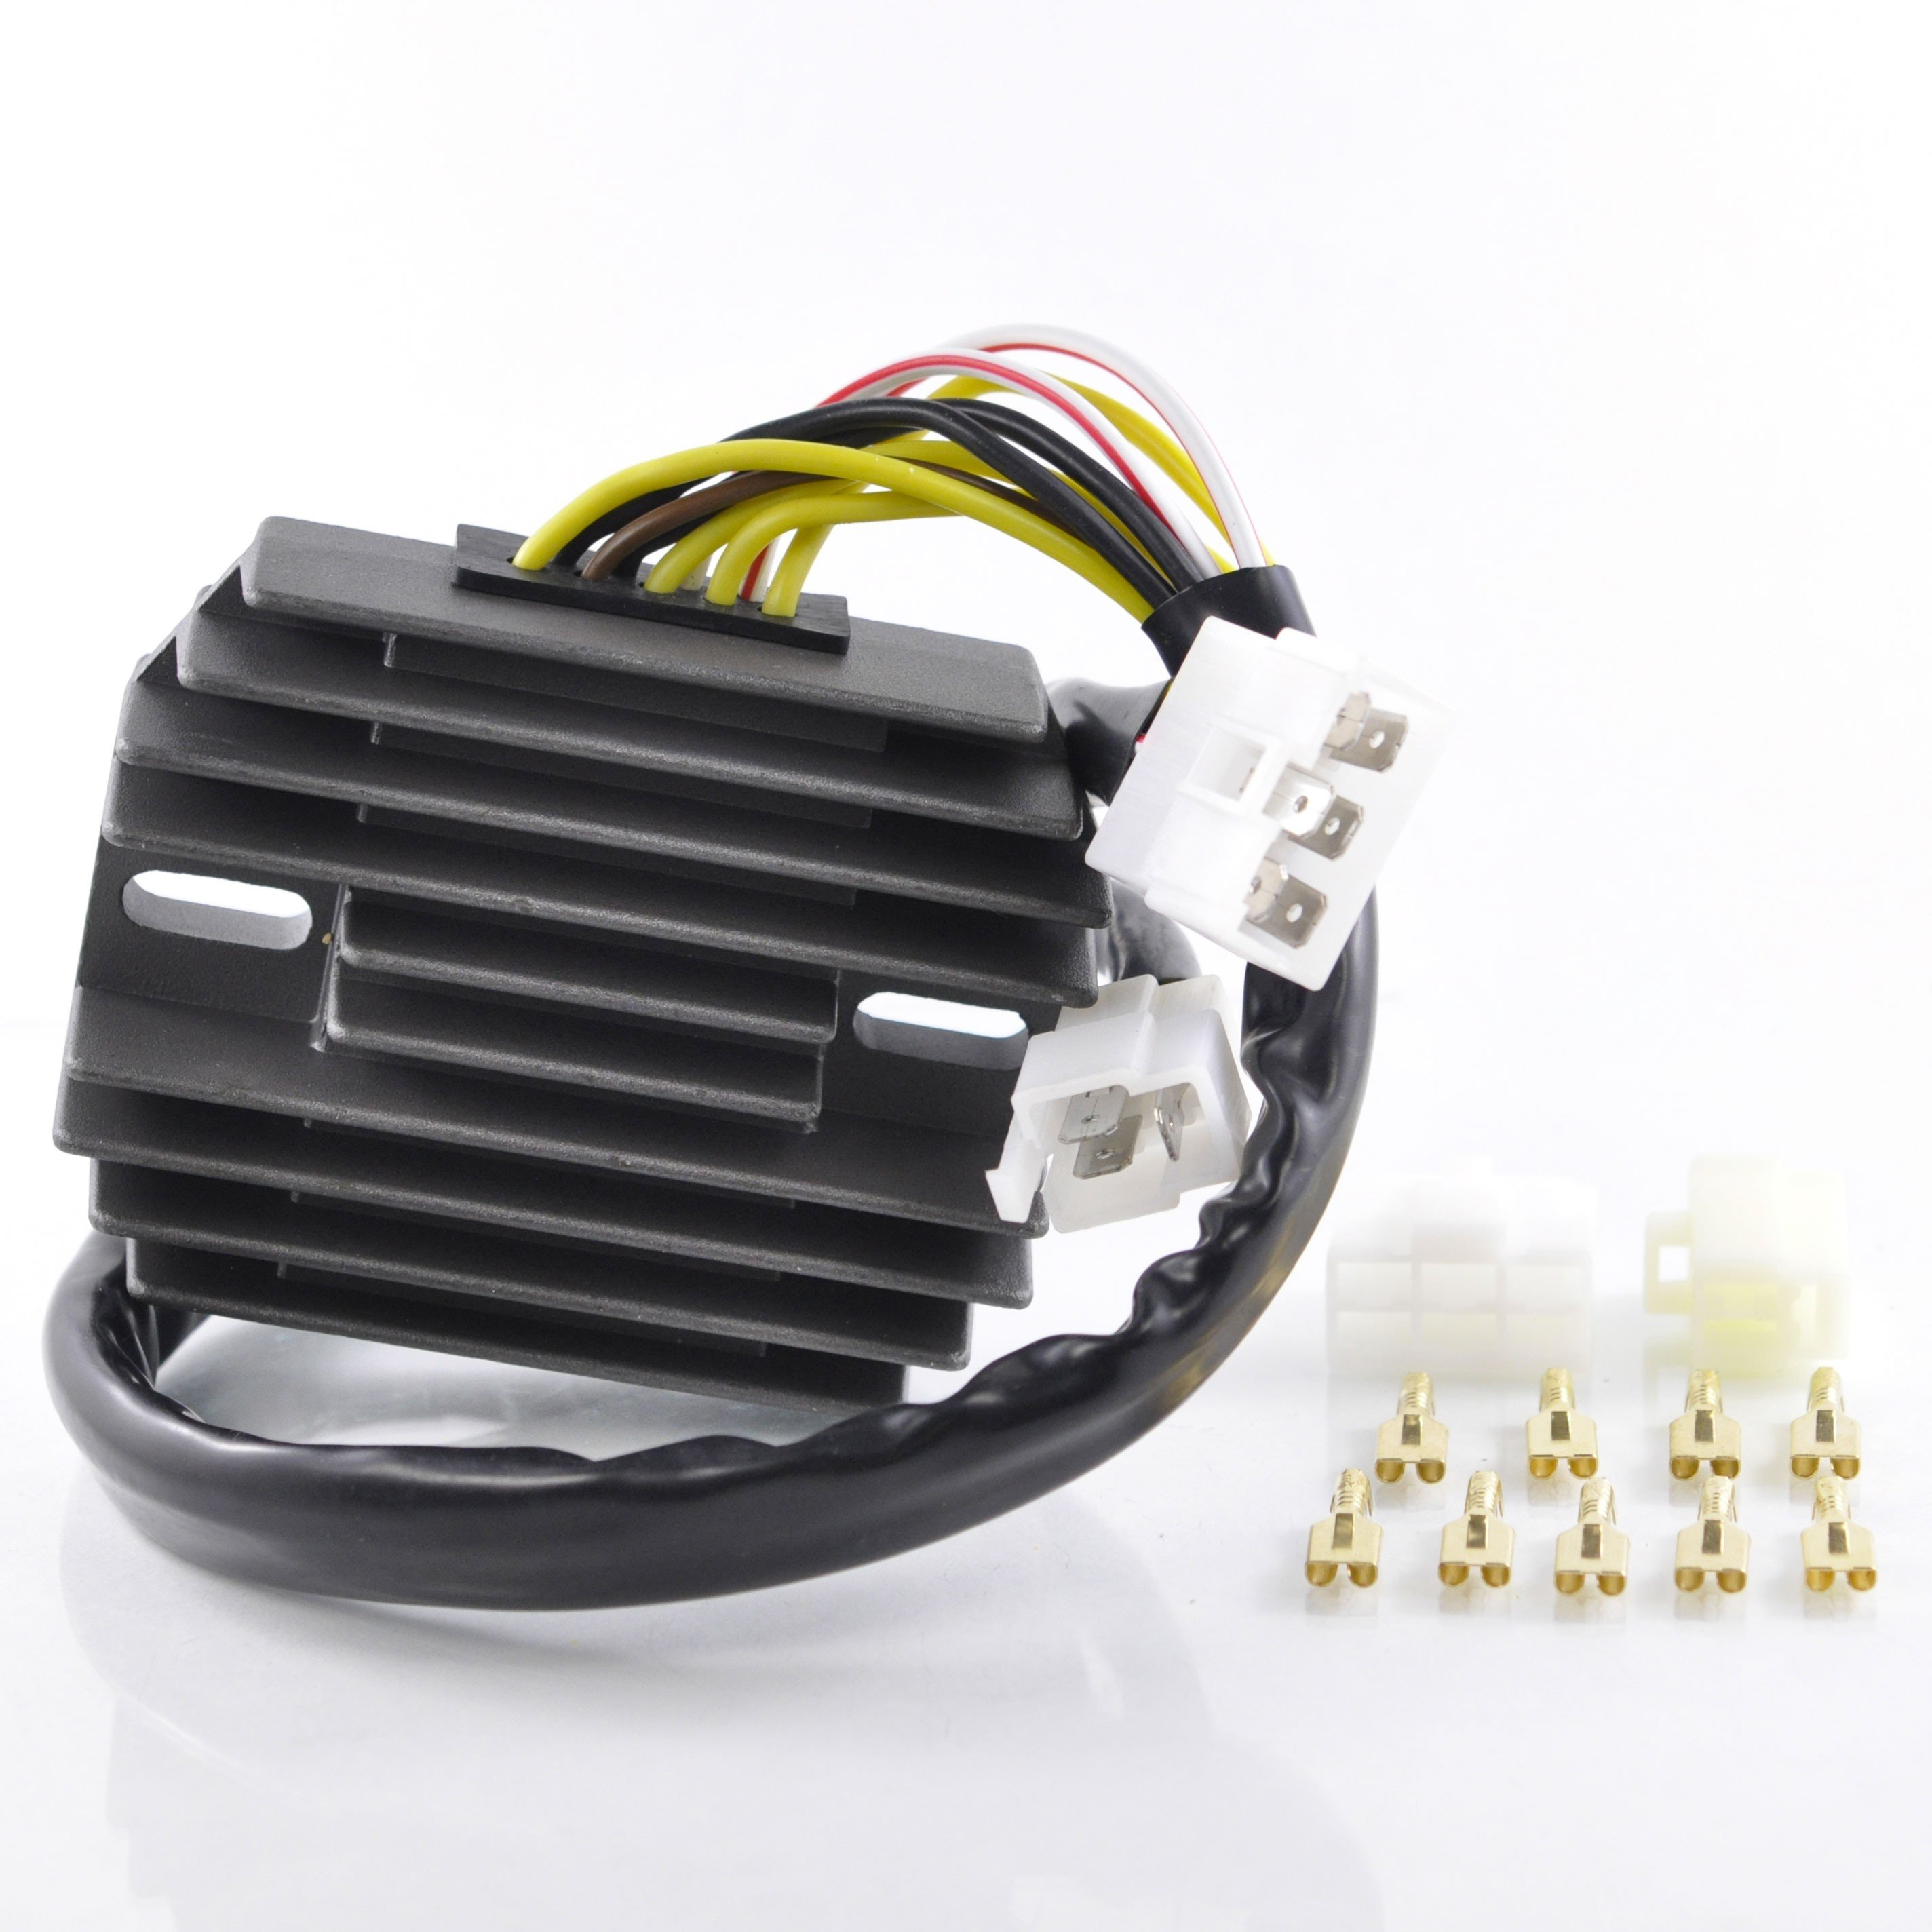 Voltage Regulator/Rectifier | Kawasaki | VN1500 Vulcan